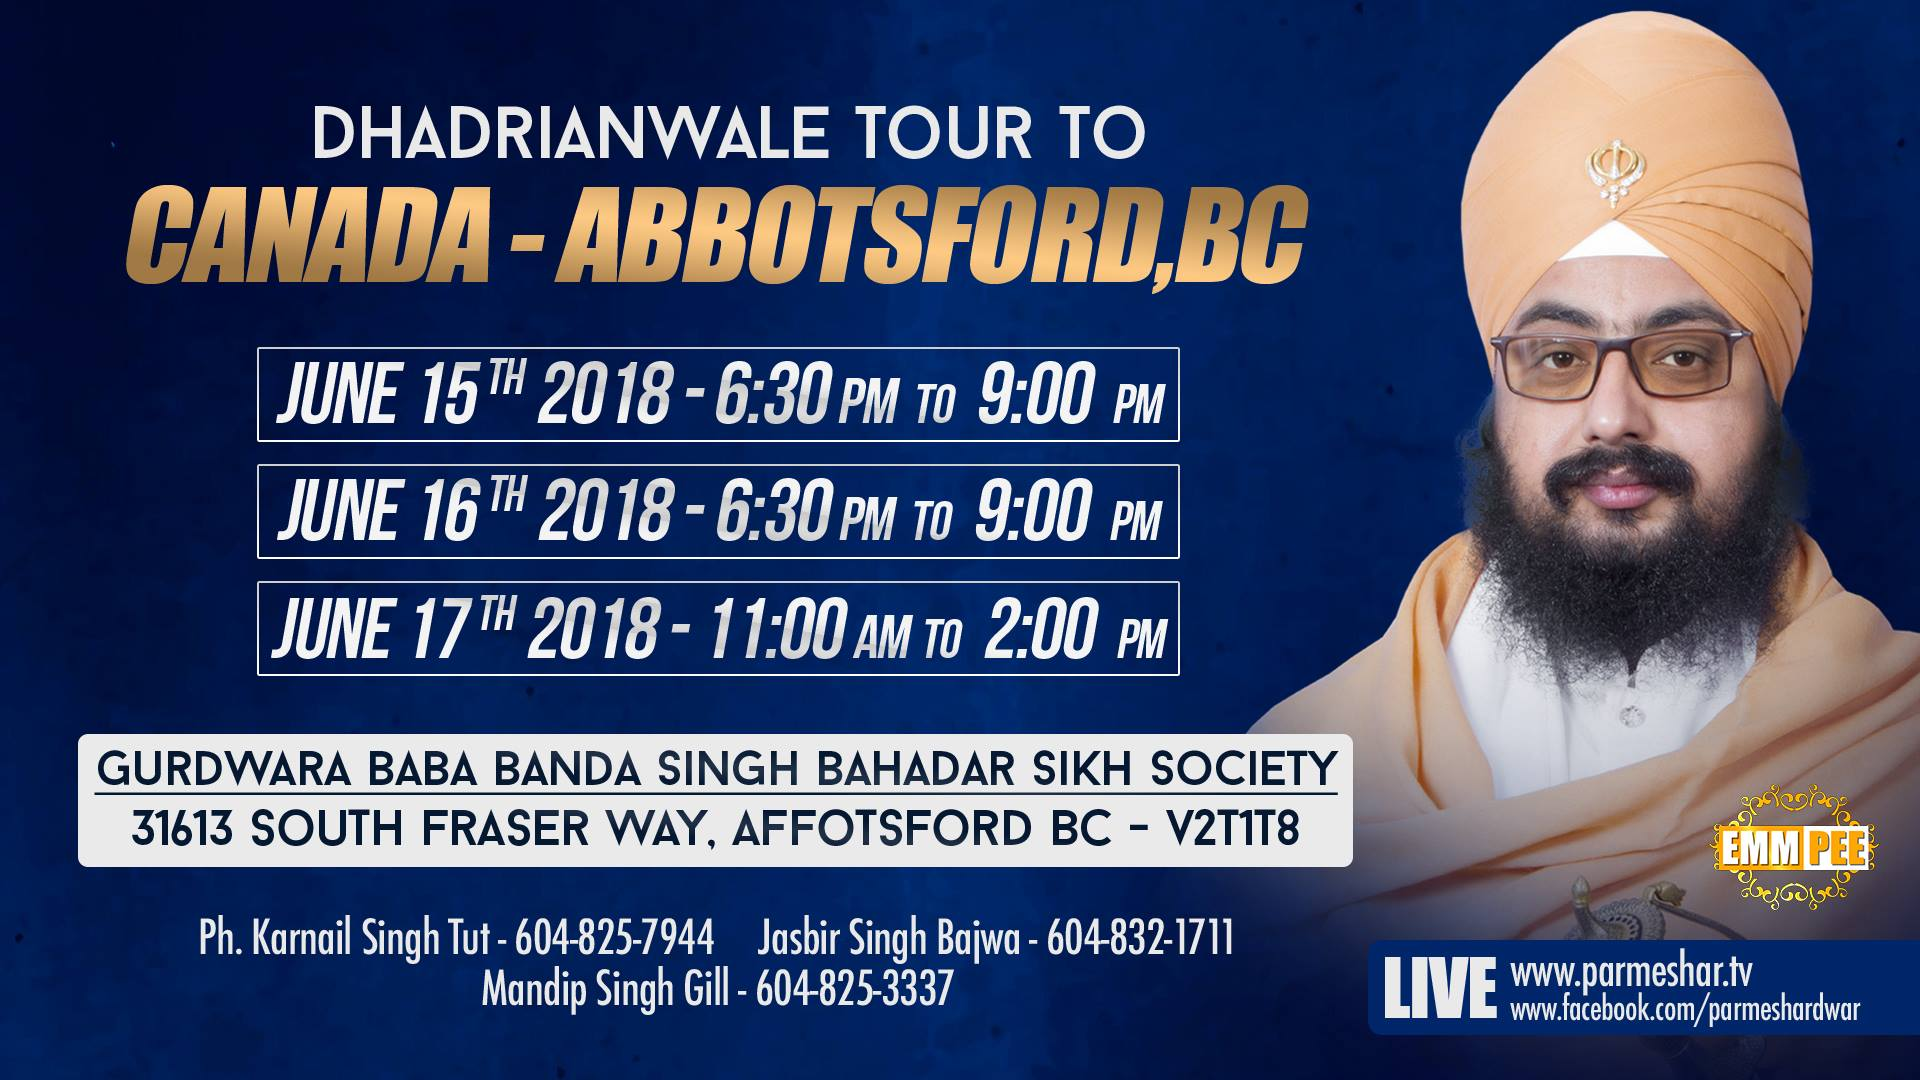 15 to17 June 2018 - Gurudwara Baba Banda Singh Bahadar Sikh Society 31613 South Fraser Way Affotsford BC - V2T1T8